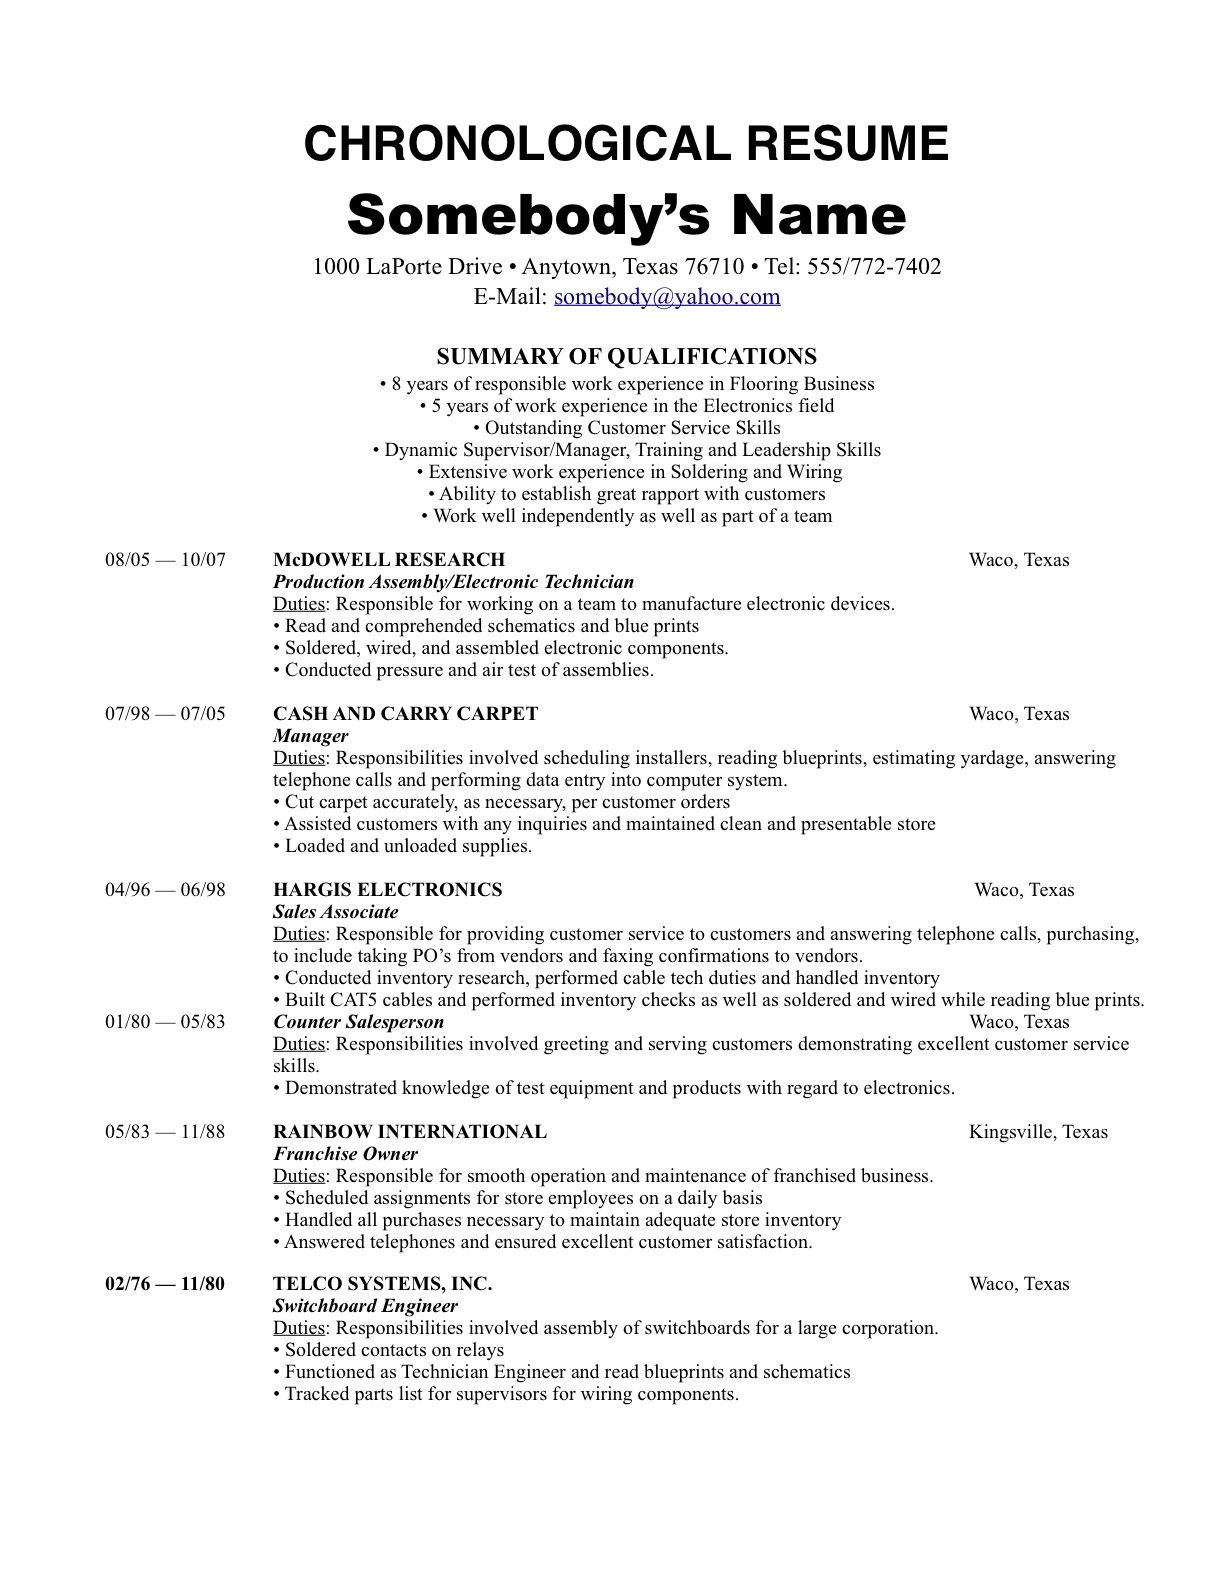 Superior Reverse Chronological Resume Example In Examples Of A Chronological Resume